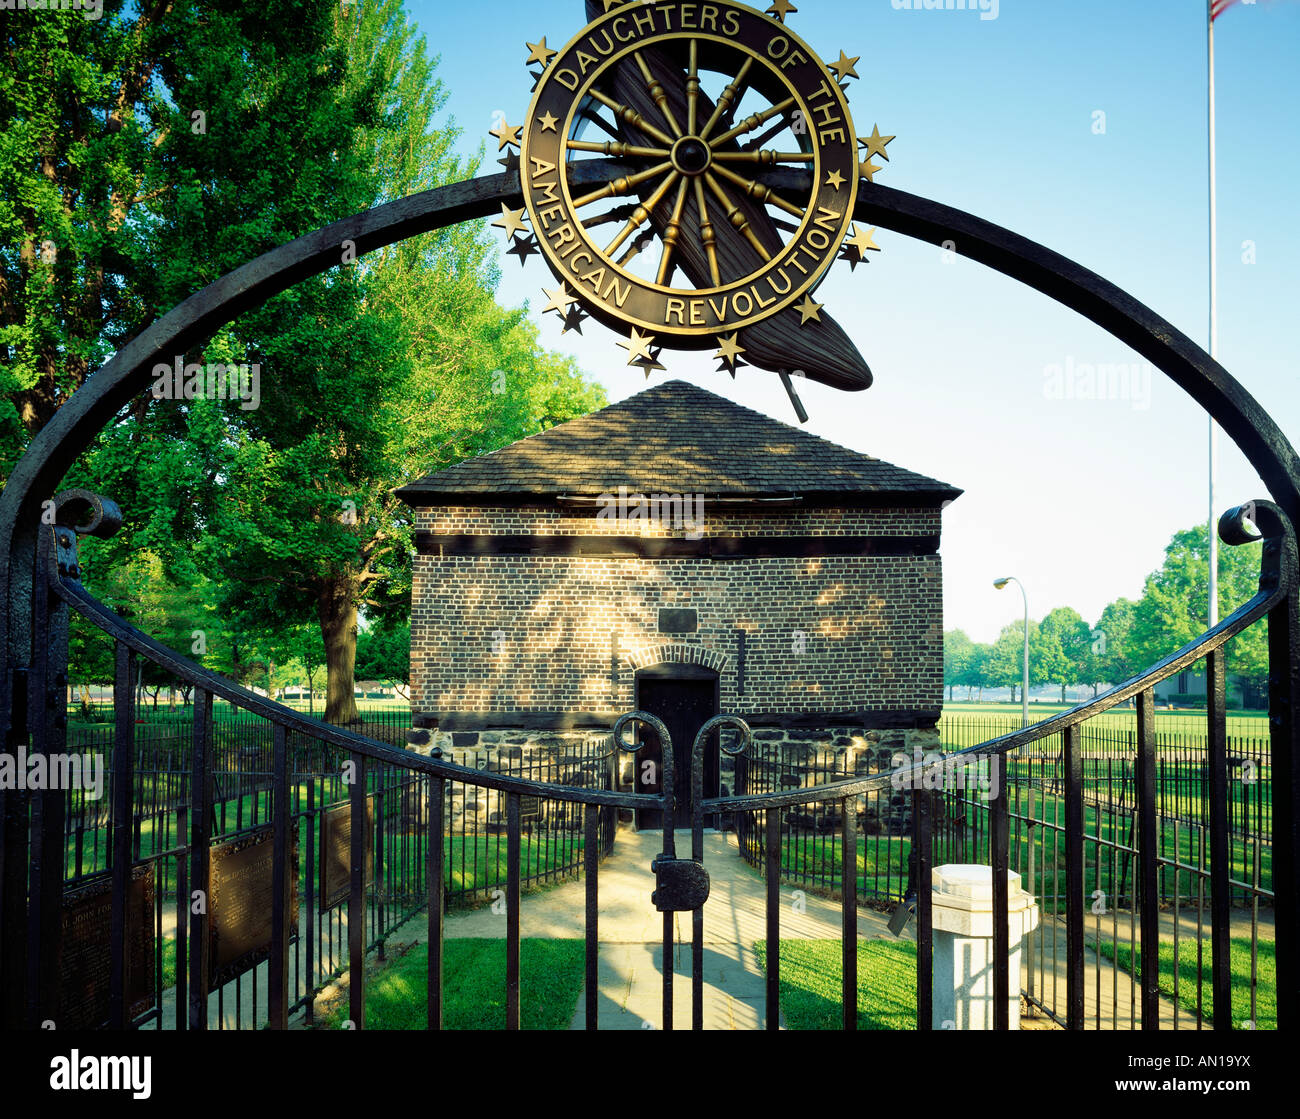 Block House Featured At Fort Pitt, Built 1764 By Col. Henry Boquet; Point Park, Pittsburgh, Pennsylvania, USA Stock Photo